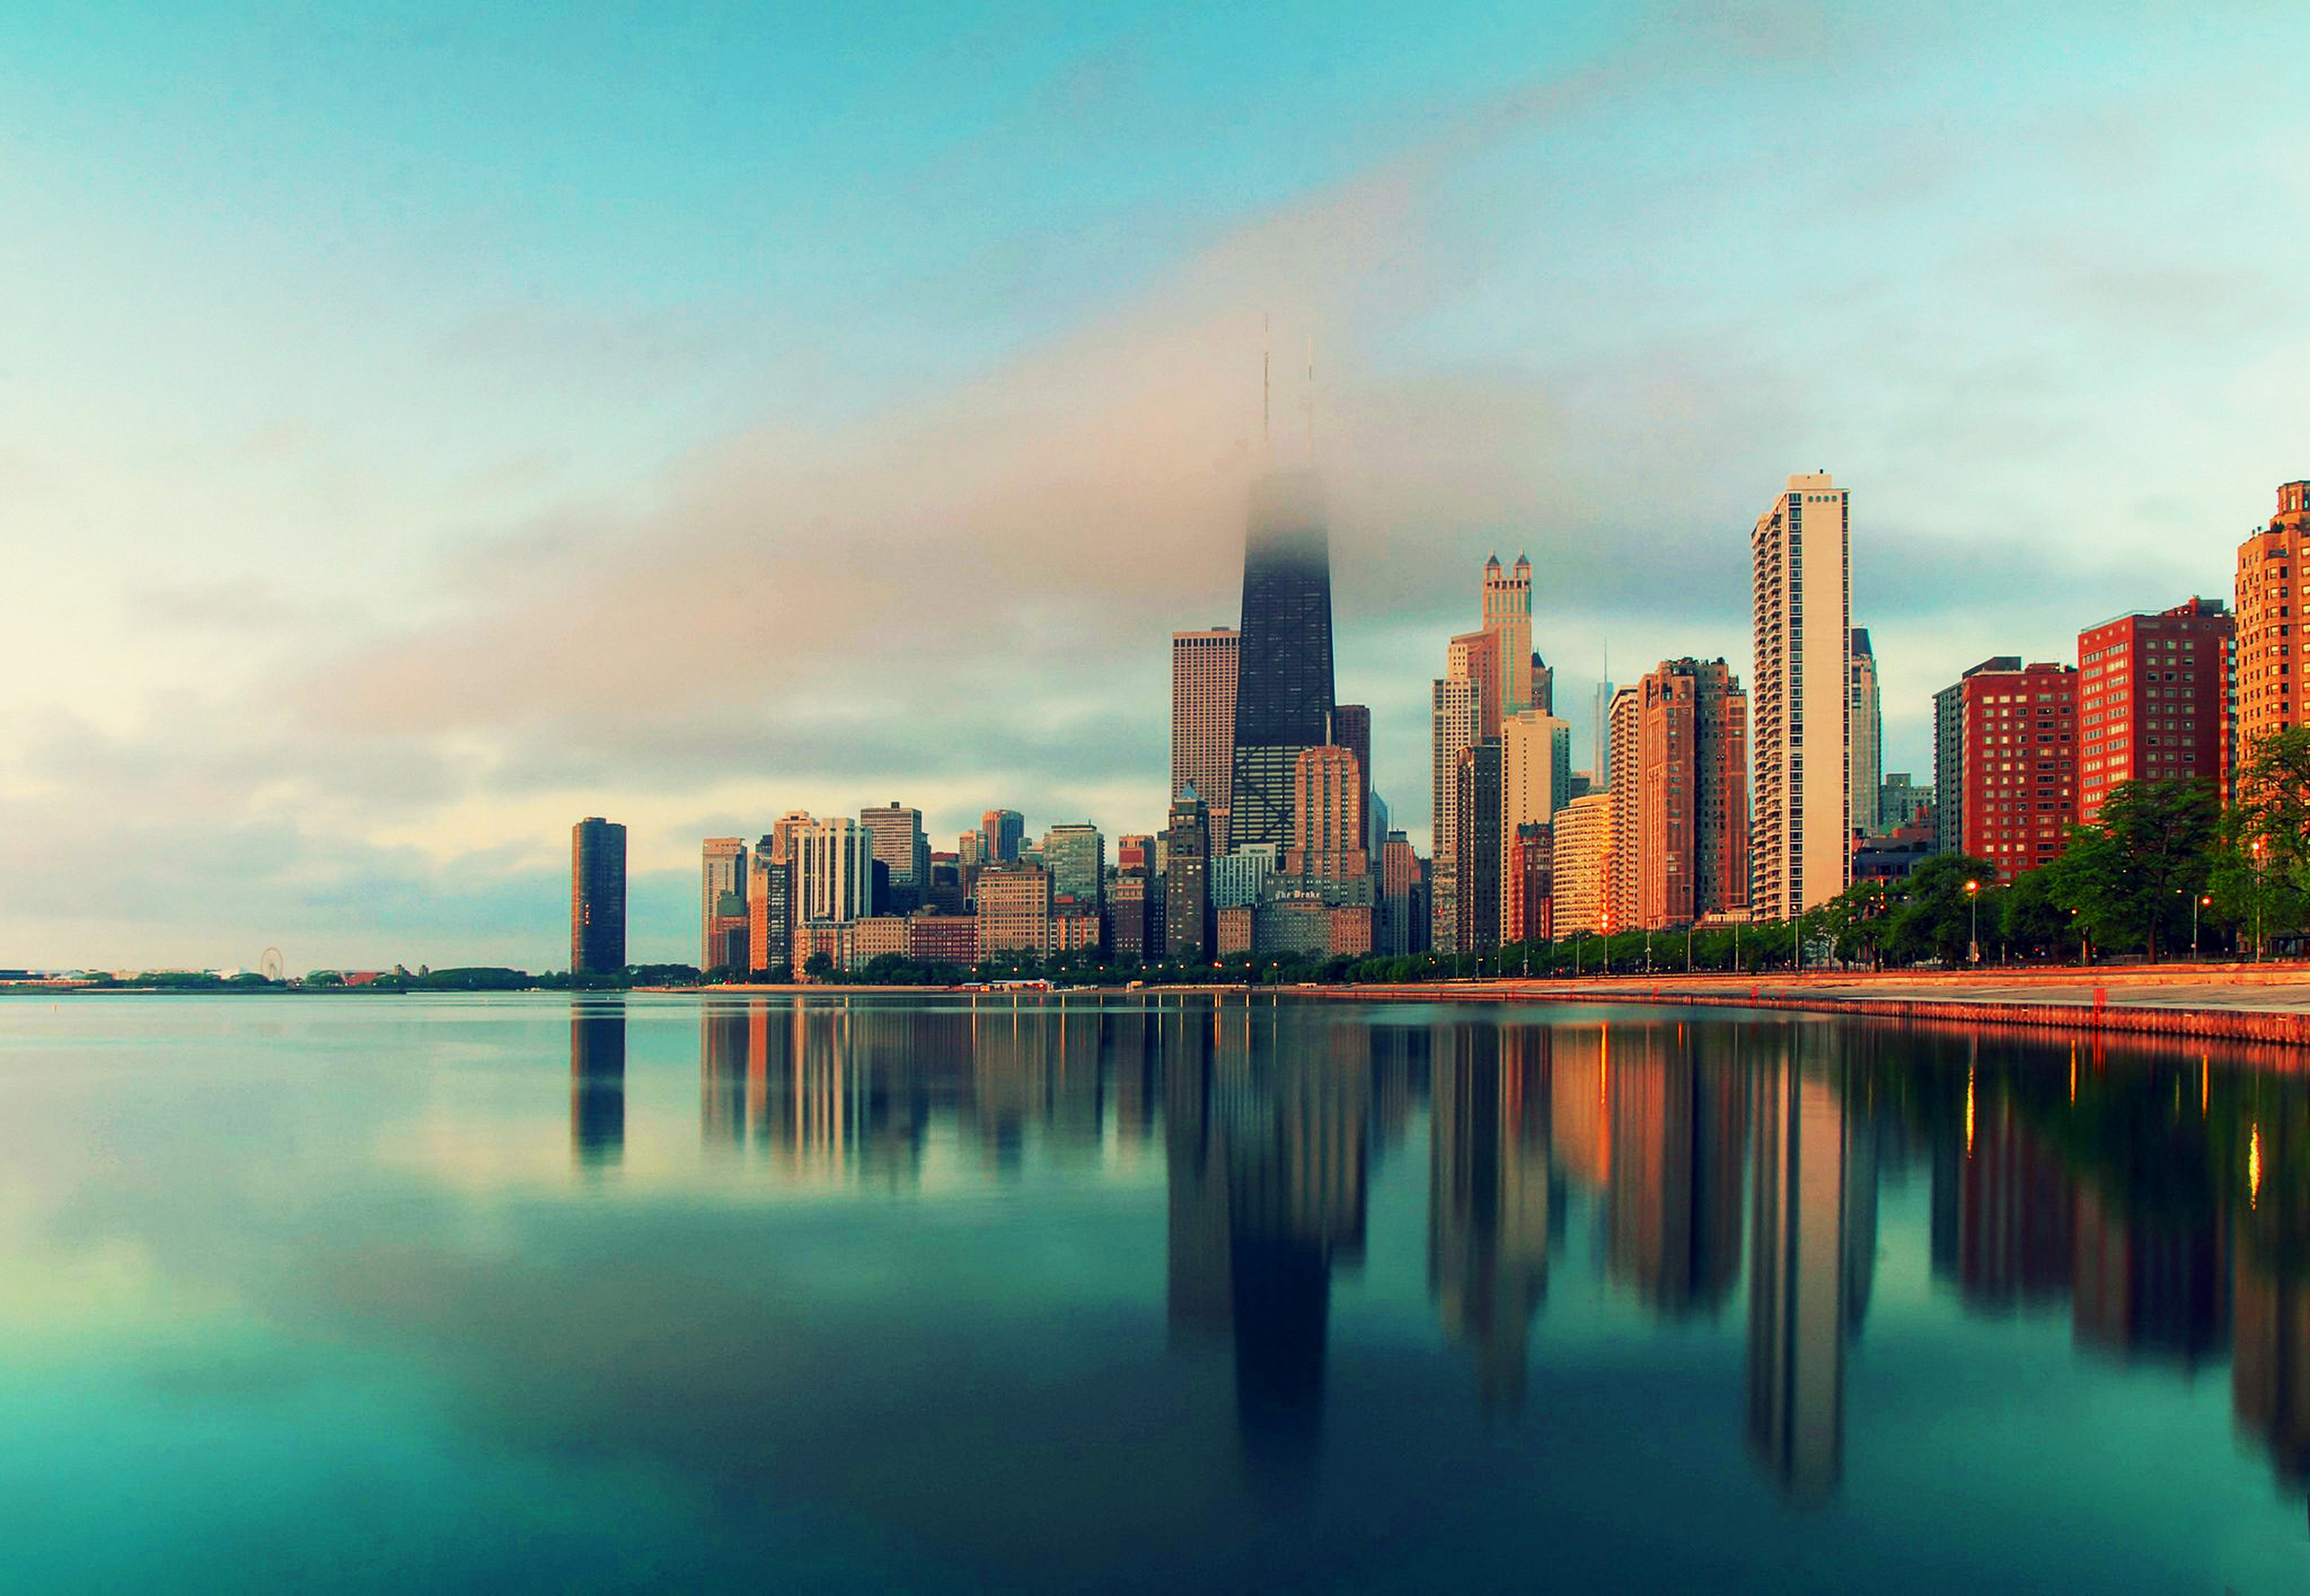 Chicago Flag Wallpaper 100 images in Collection Page 1 3840x2653